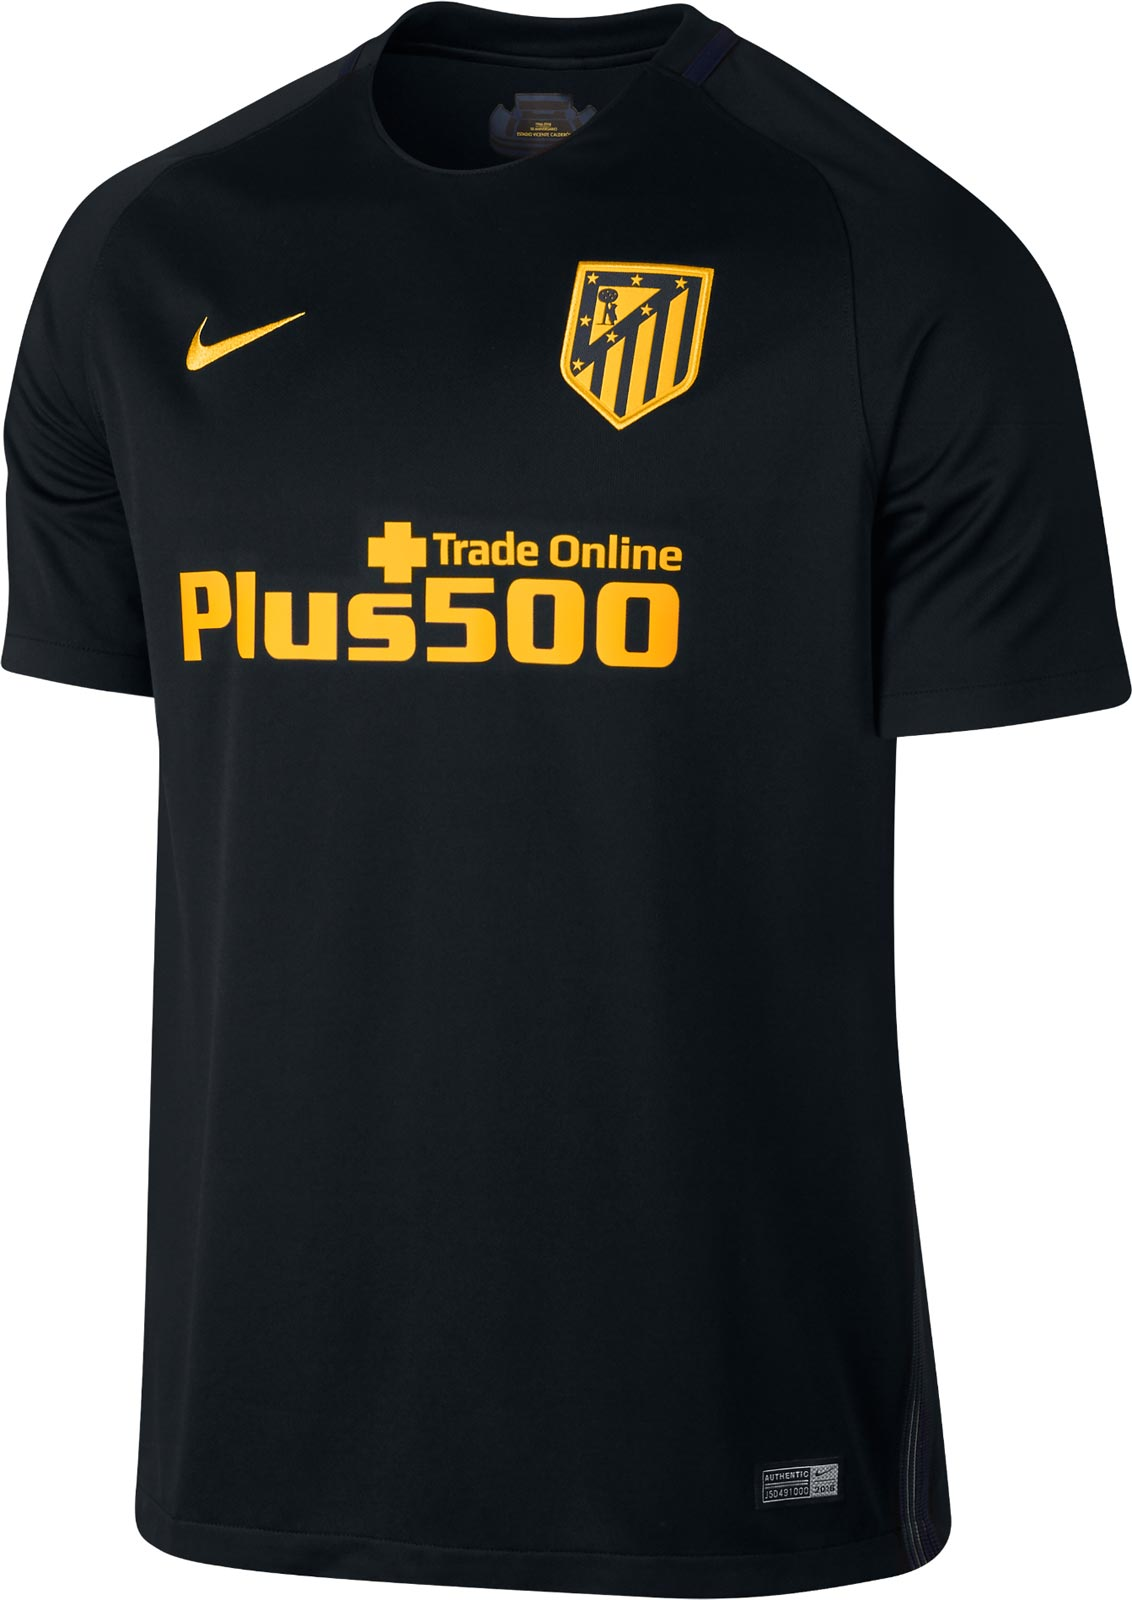 atletico-16-17-away-kit-2.jpg